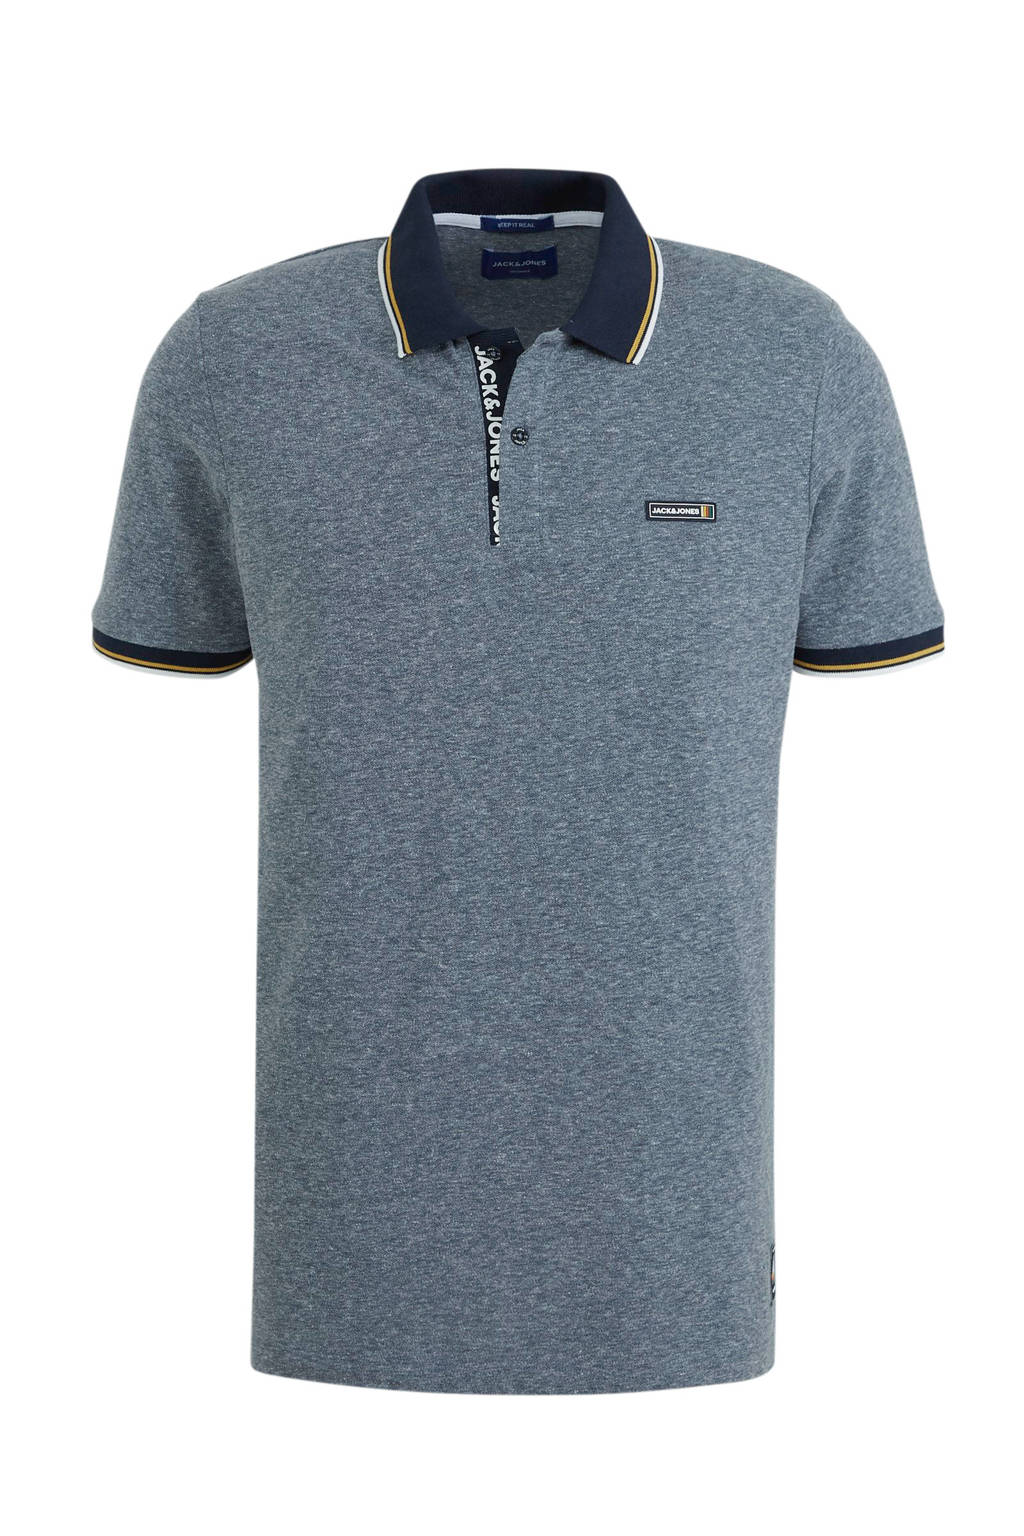 JACK & JONES ORIGINALS gemêleerde regular fit polo grijs, Grijs